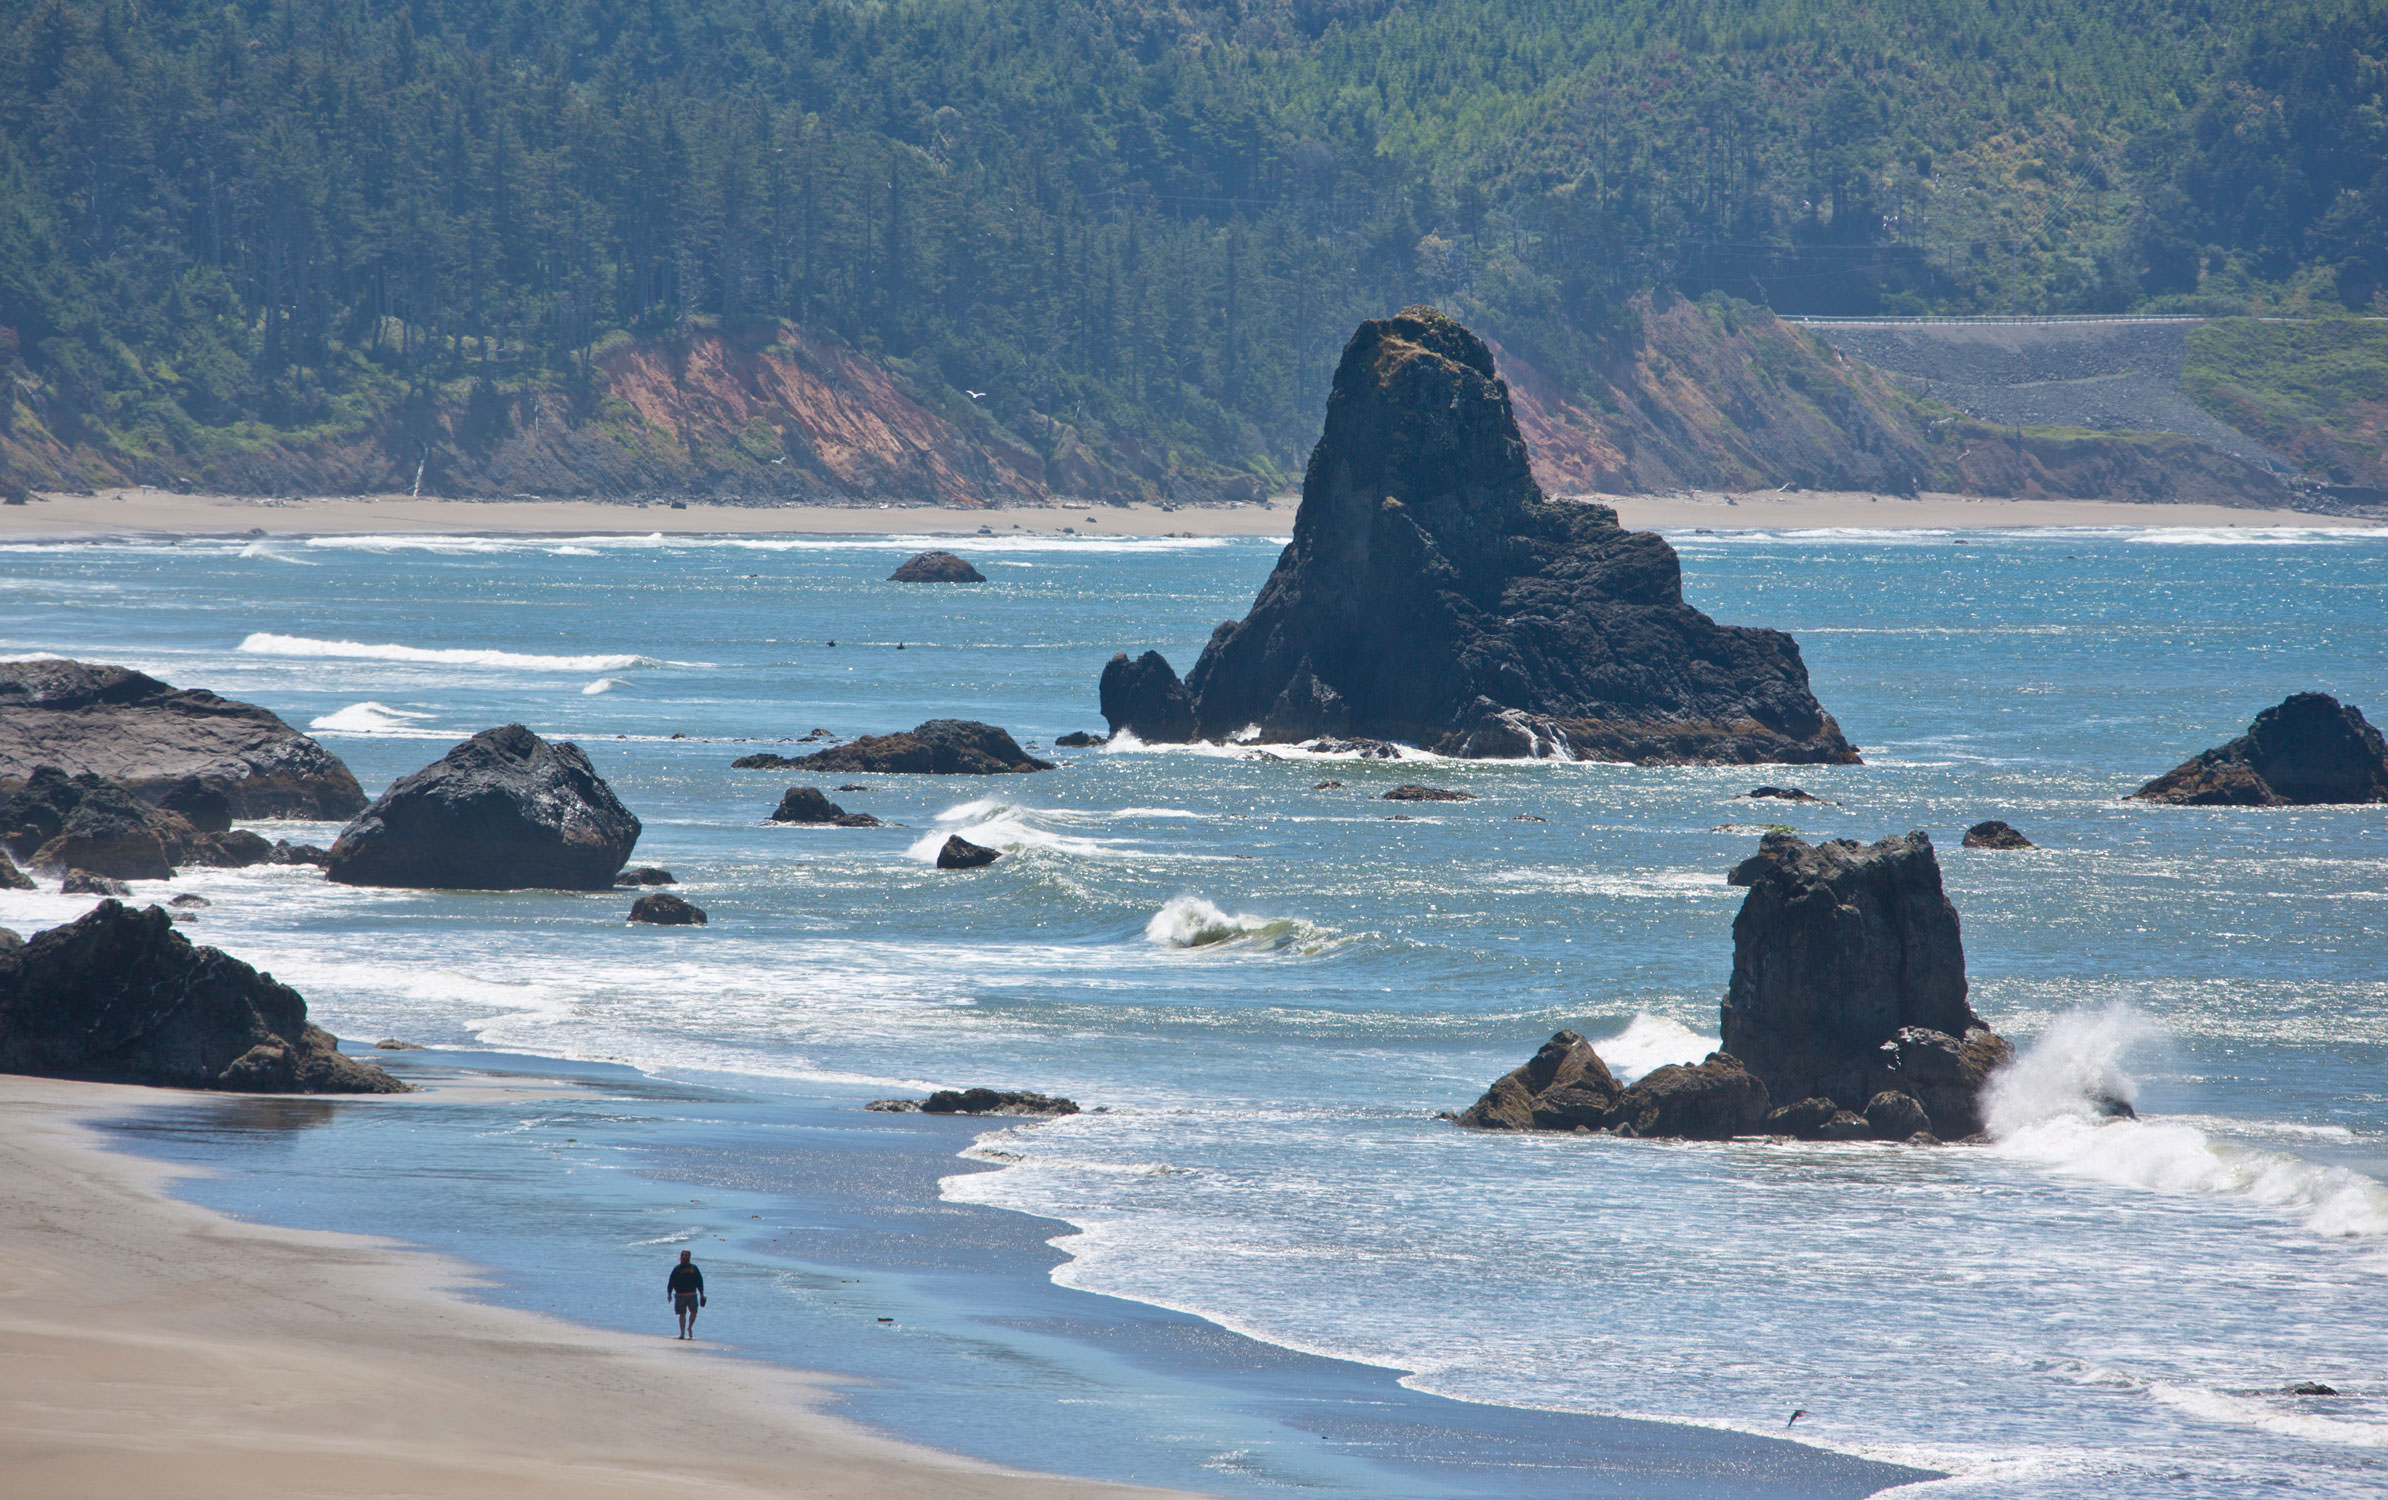 A person walks along the beach of Port Orford, ,where sea stacks tower near the shore.